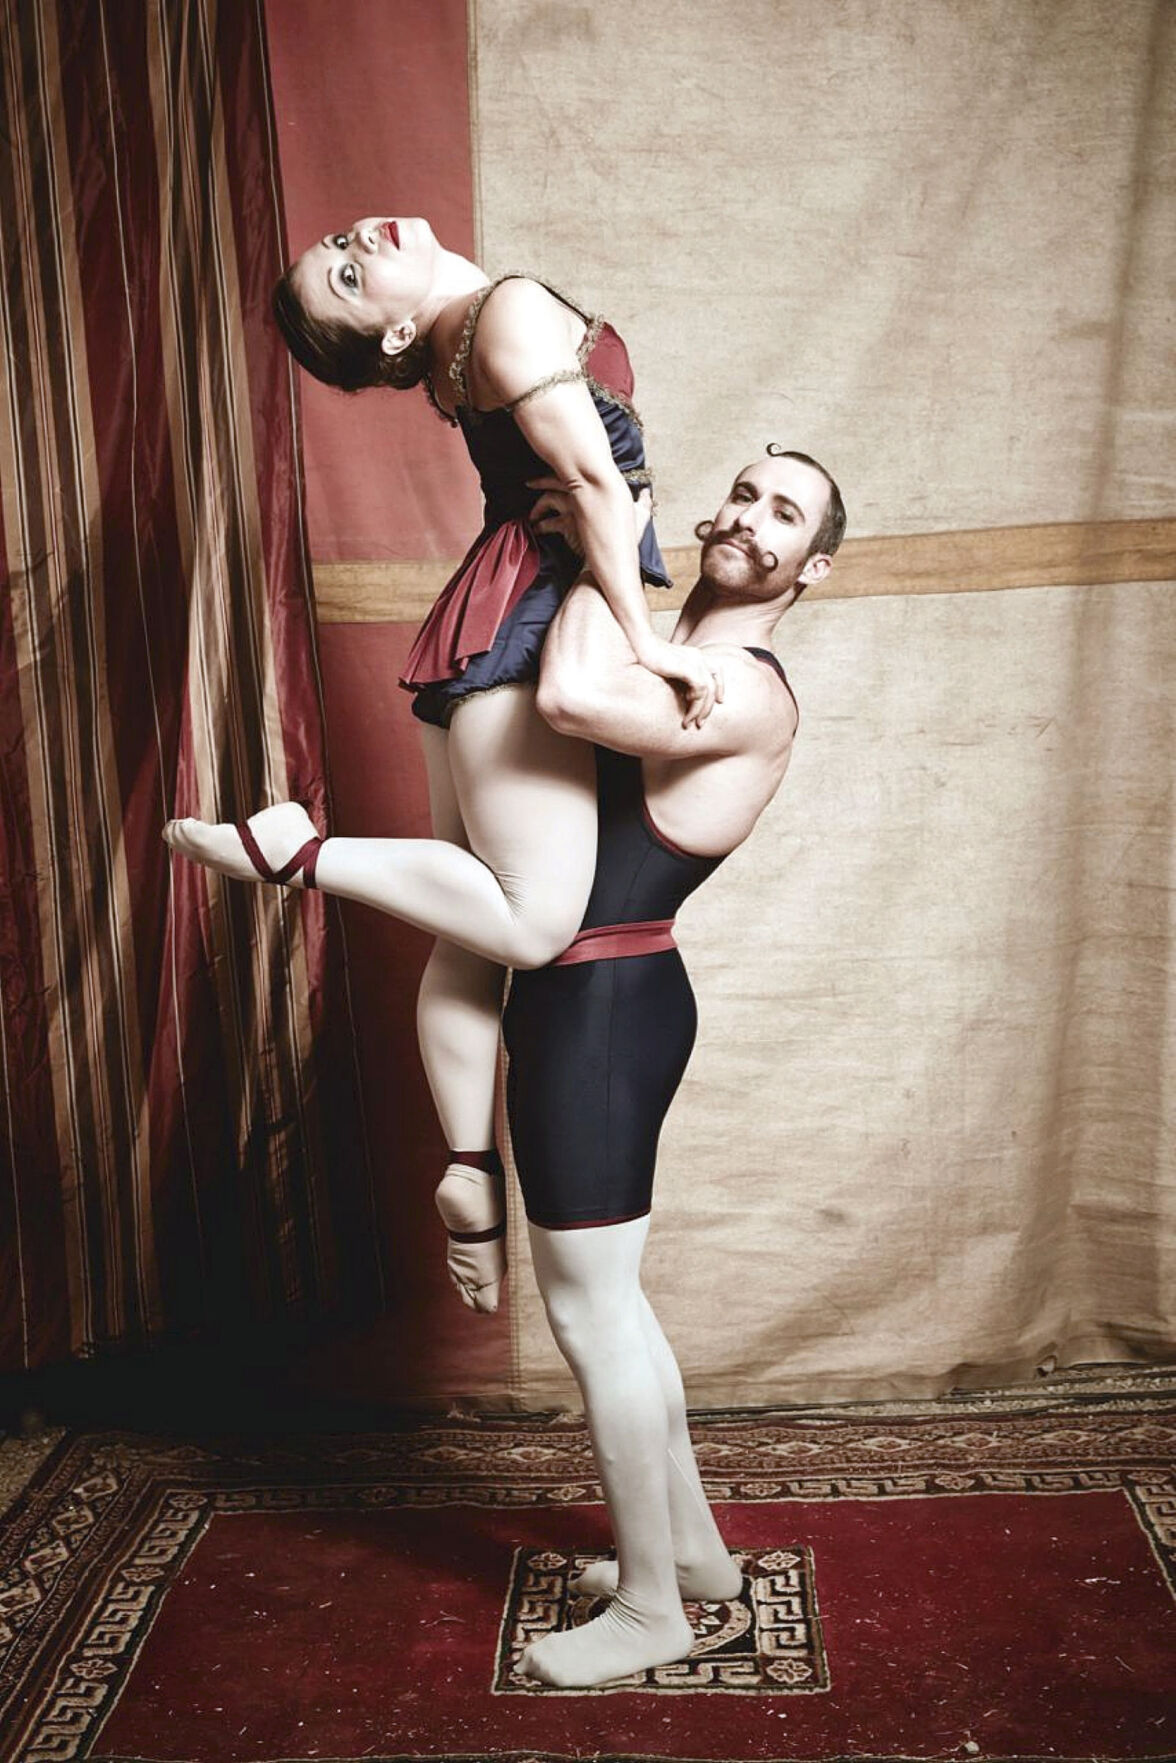 Circus 1903 steps out of a time machine into the present